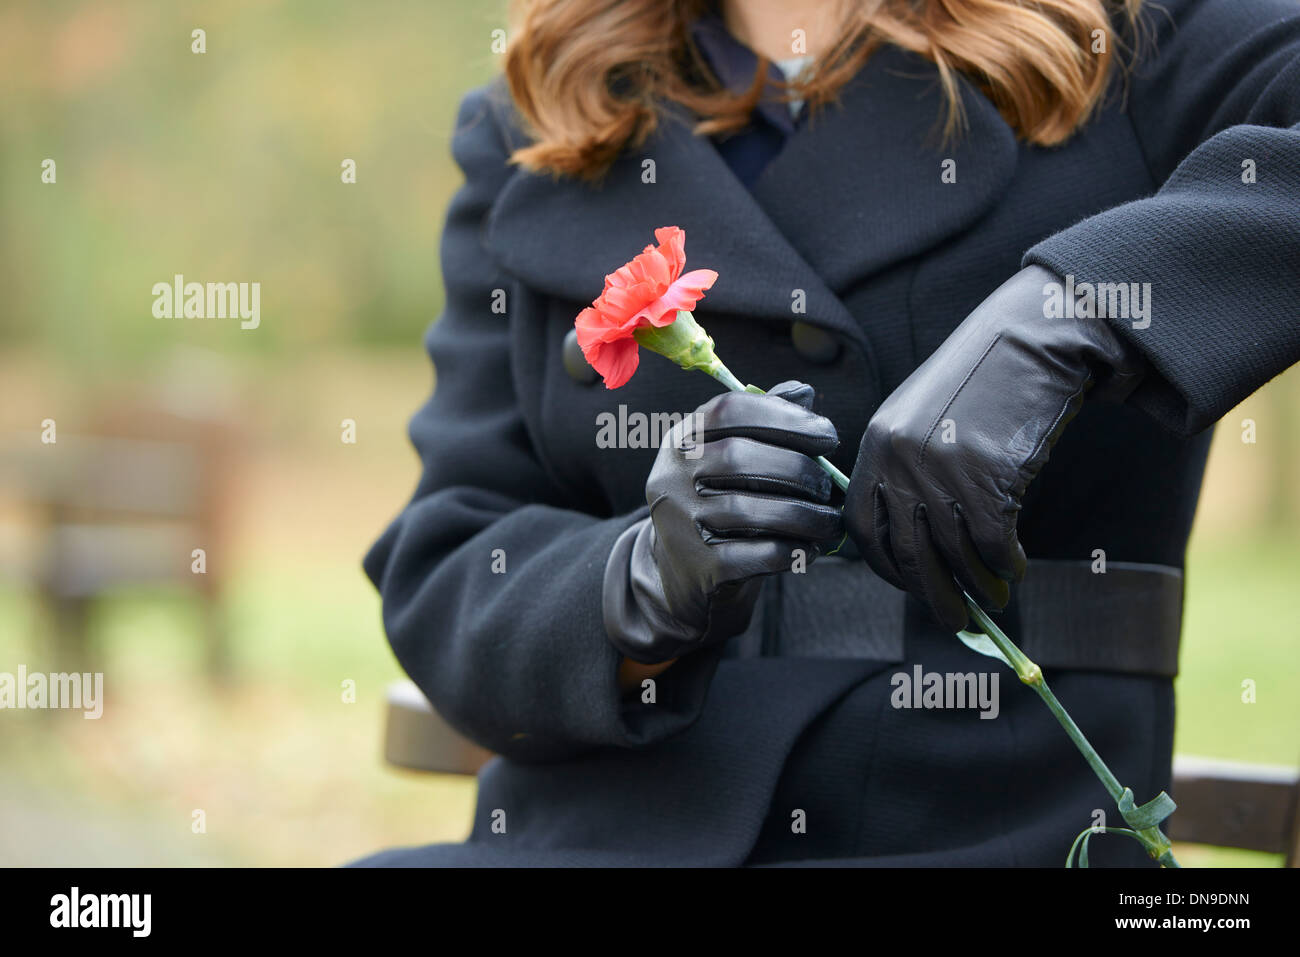 Funeral service - Stock Image